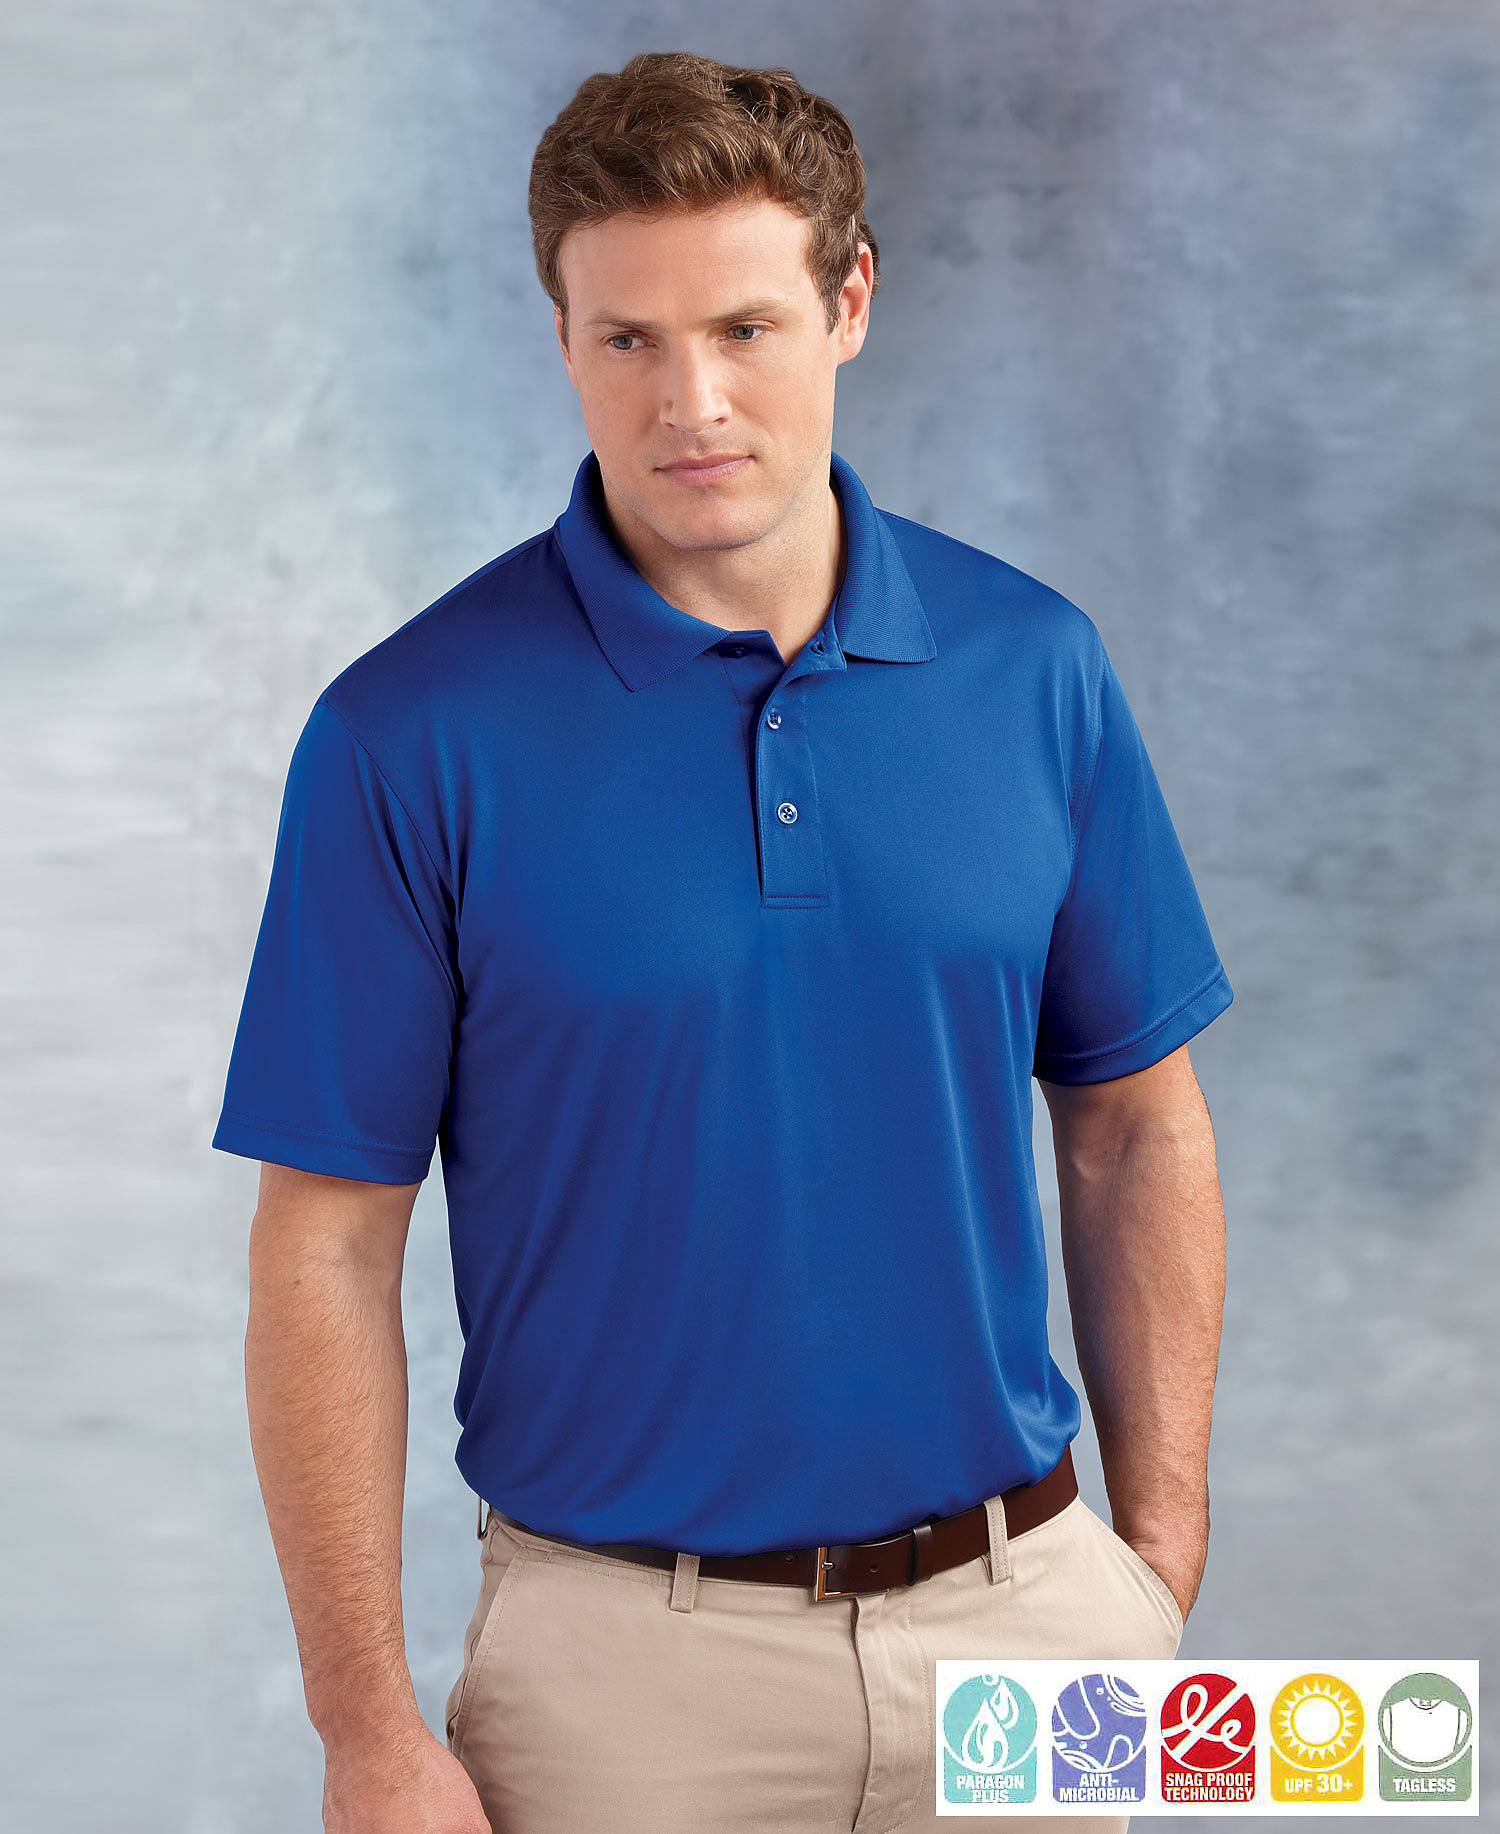 Paragon - SM4001 Mens Snag Proof Polo